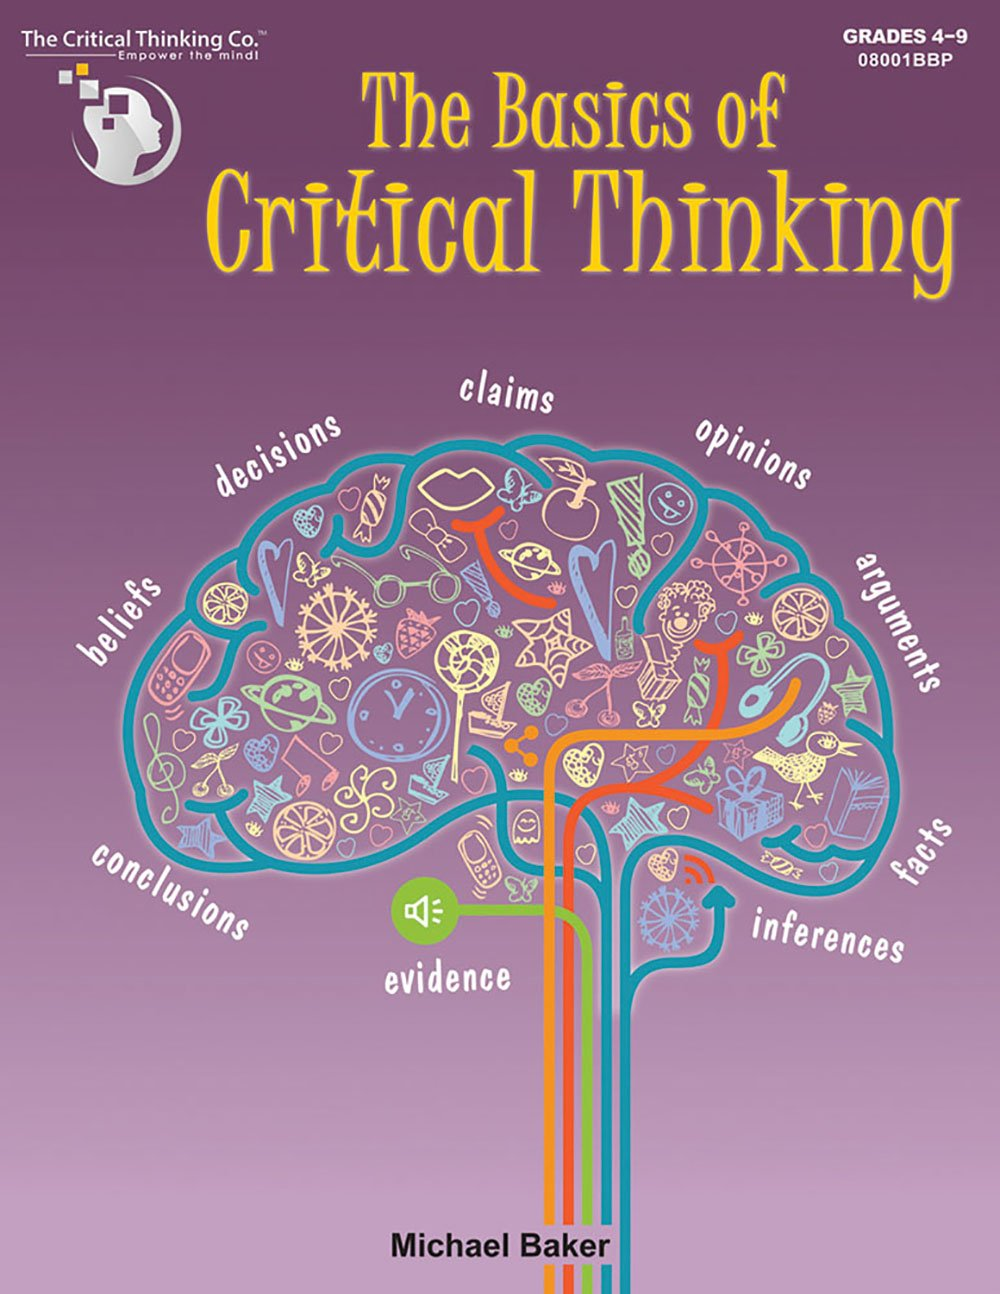 critical and creative thinking course description Successful organizations rely on critical thinkers and creative thought leaders who can generate inventive solutions to everyday problems in this training course, you gain the knowledge and skills needed to leverage left- and right-brain thinking, analyze problems, spur creativity, and implement.